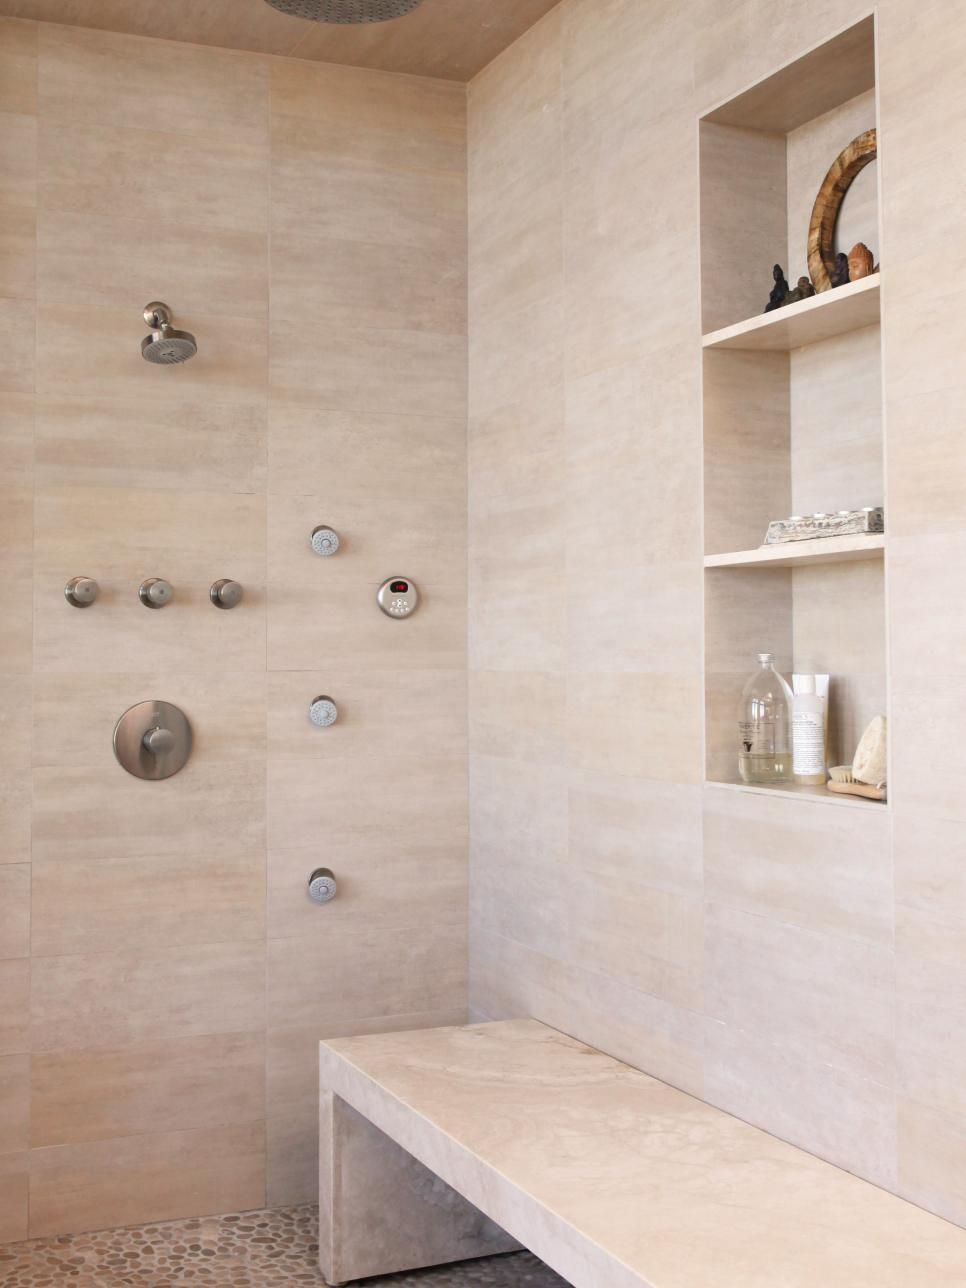 Simple Luxury Describes This Large, Open Shower With Cream And Beige Marble  Wall Tile And Inlaid Stone Medallion Flooring. The Built In Shelves And  Bench ...